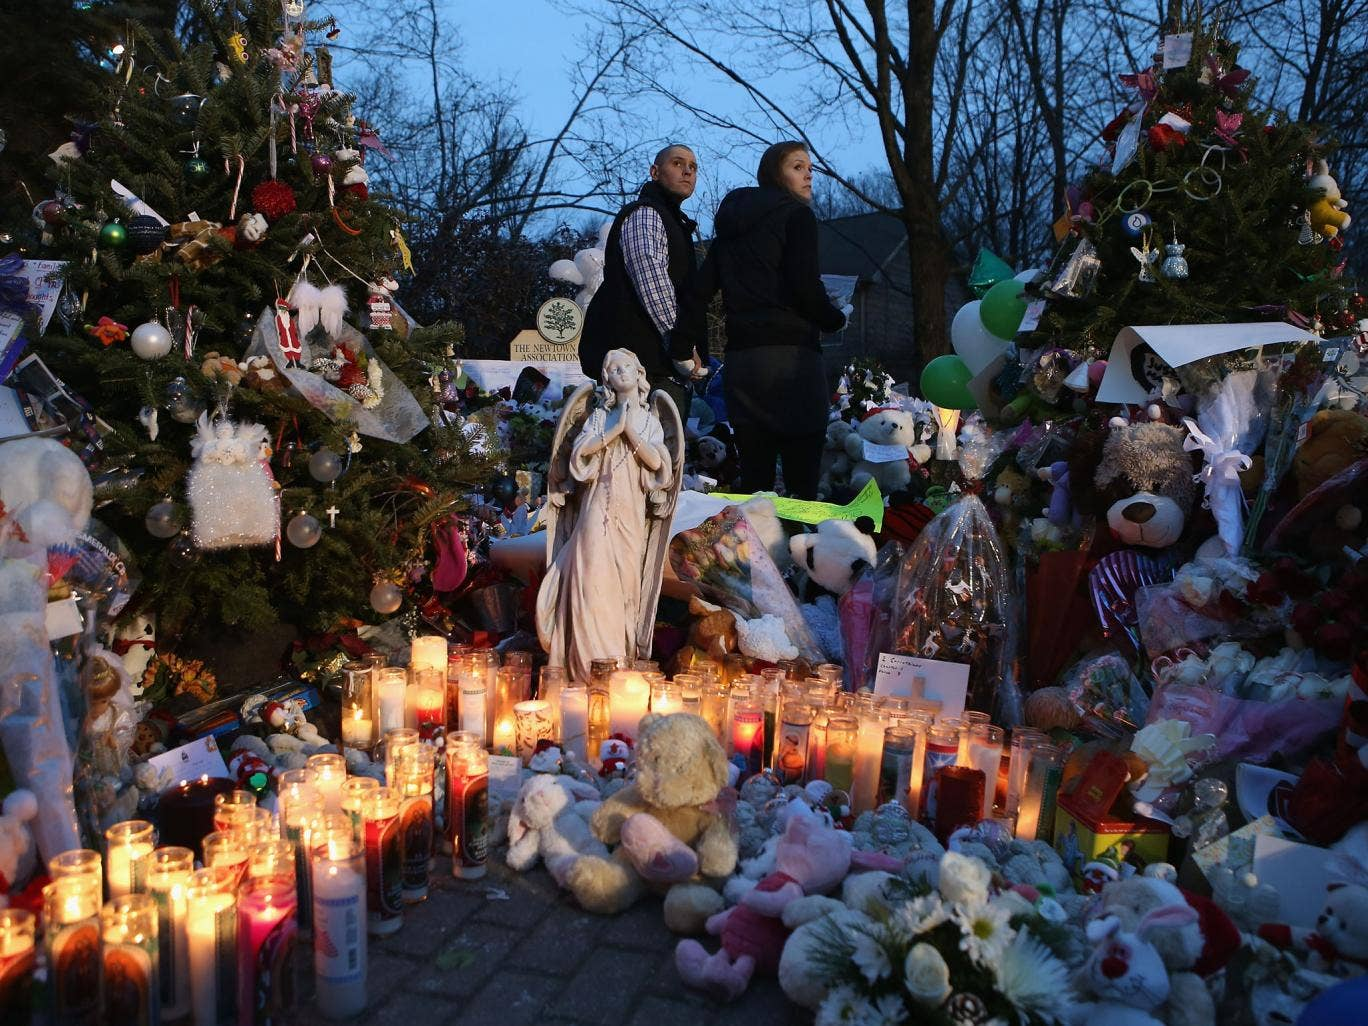 The Newtown community continues to mourn